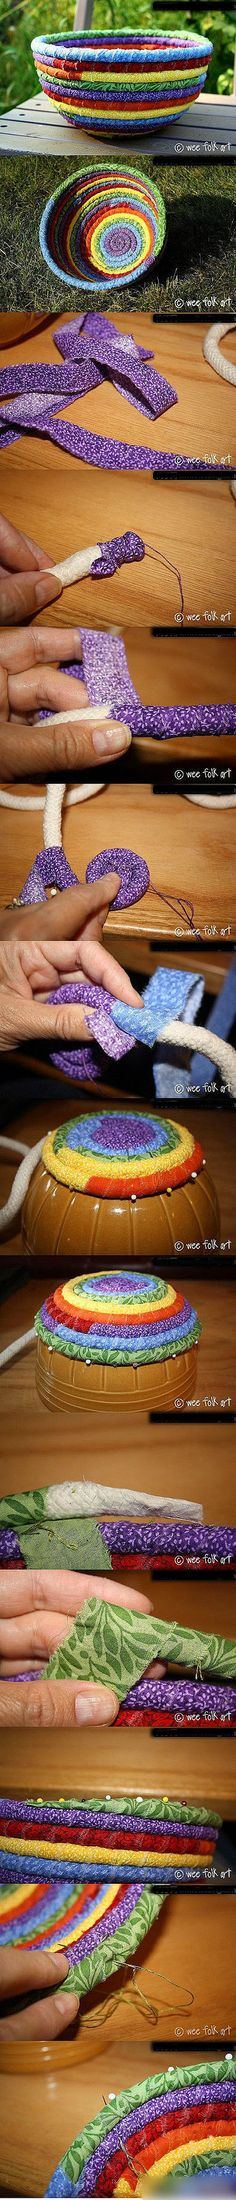 DIY Colorful Rope Bowl